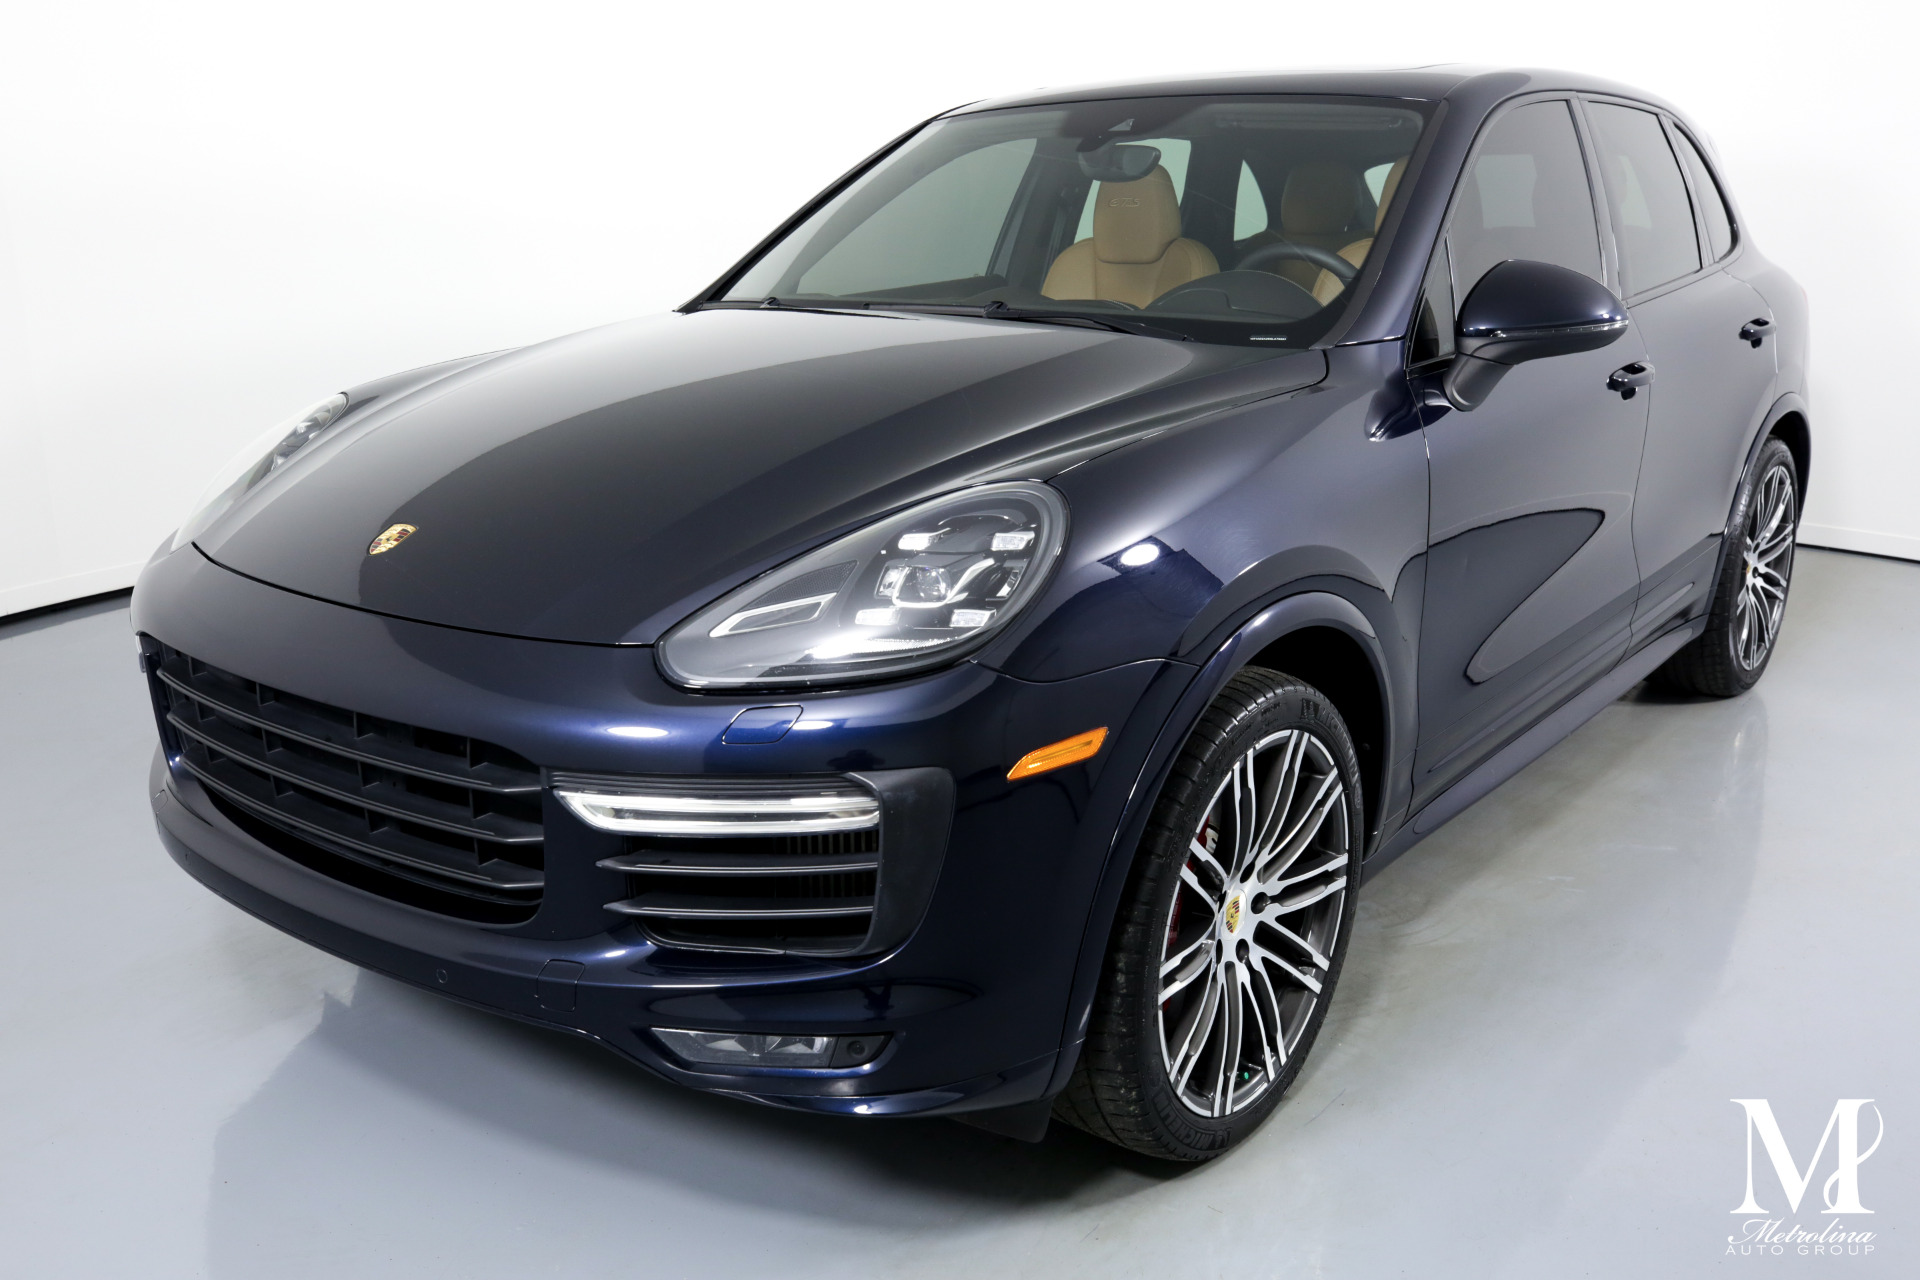 Used 2016 Porsche Cayenne GTS for sale $42,996 at Metrolina Auto Group in Charlotte NC 28217 - 4